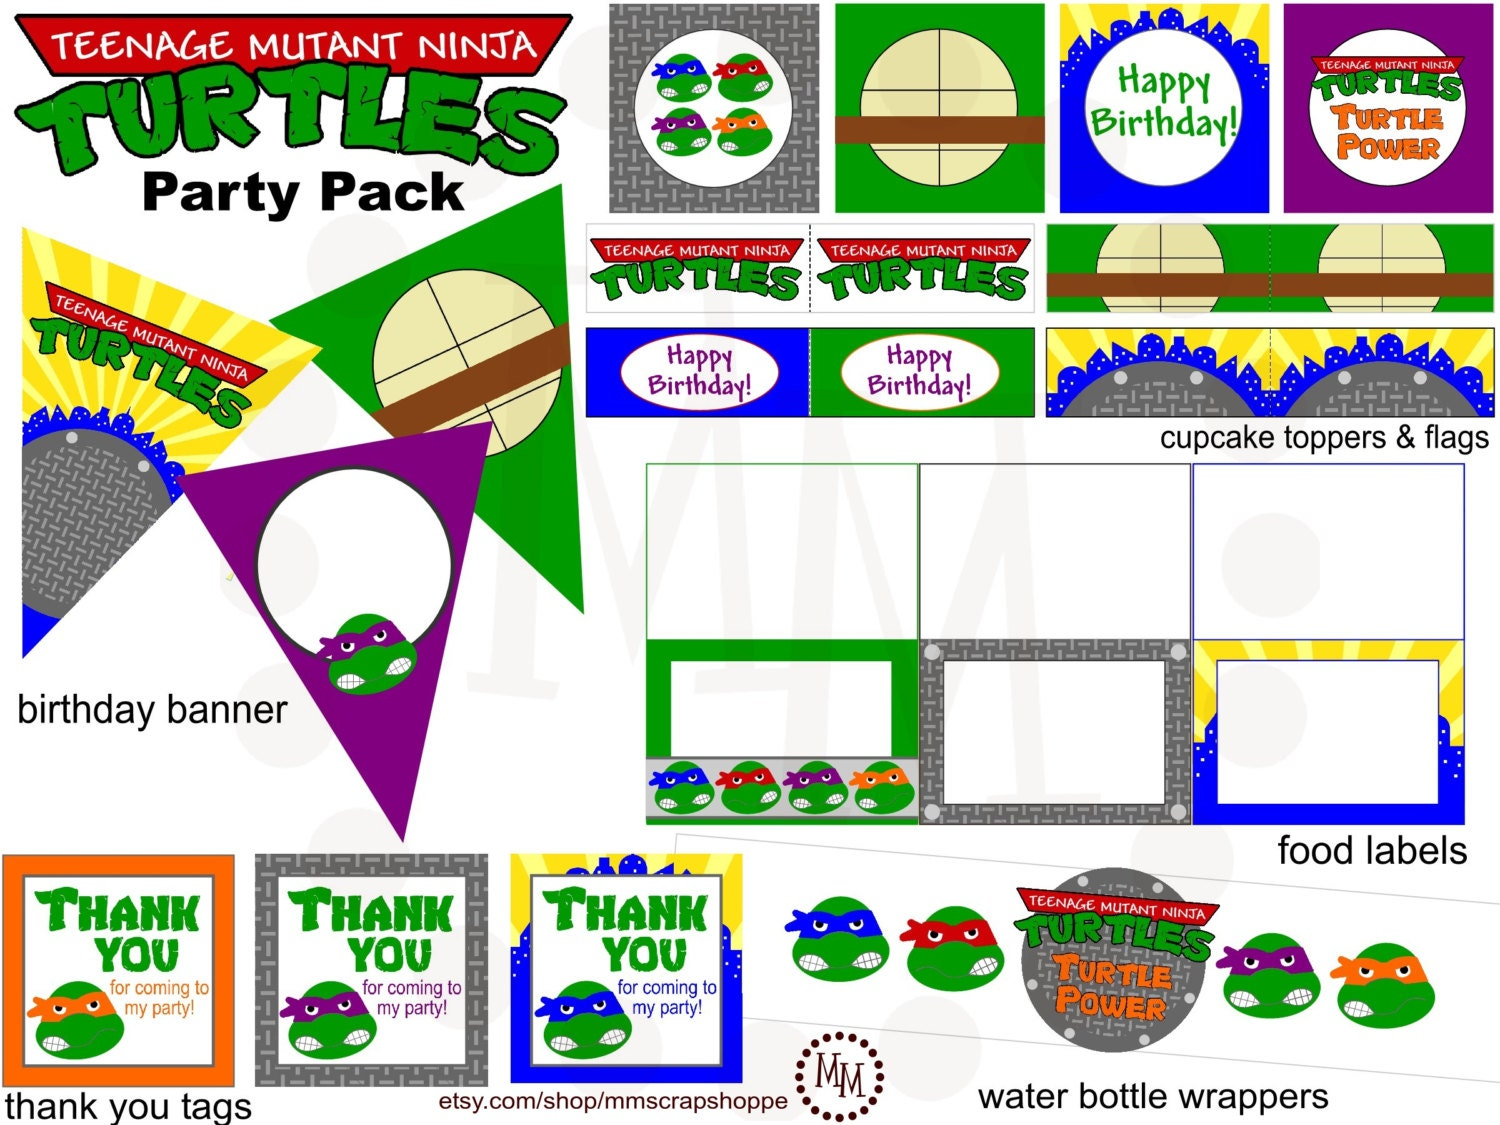 Teenage Mutant Ninja Turtles Printable Party Pack By